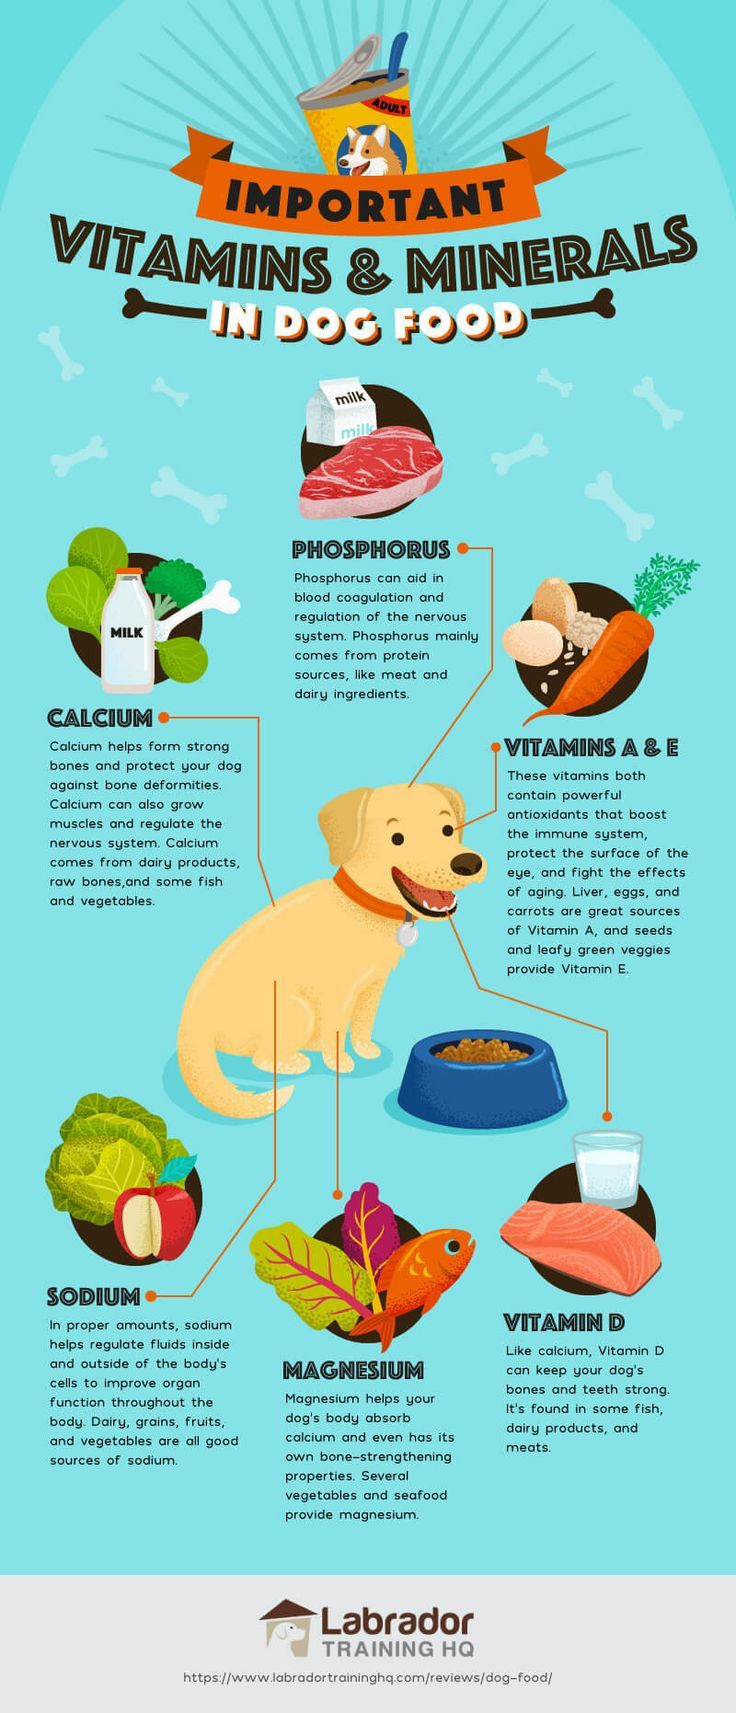 Best Dog Foods Our Complete Guide For 2020 Dog food